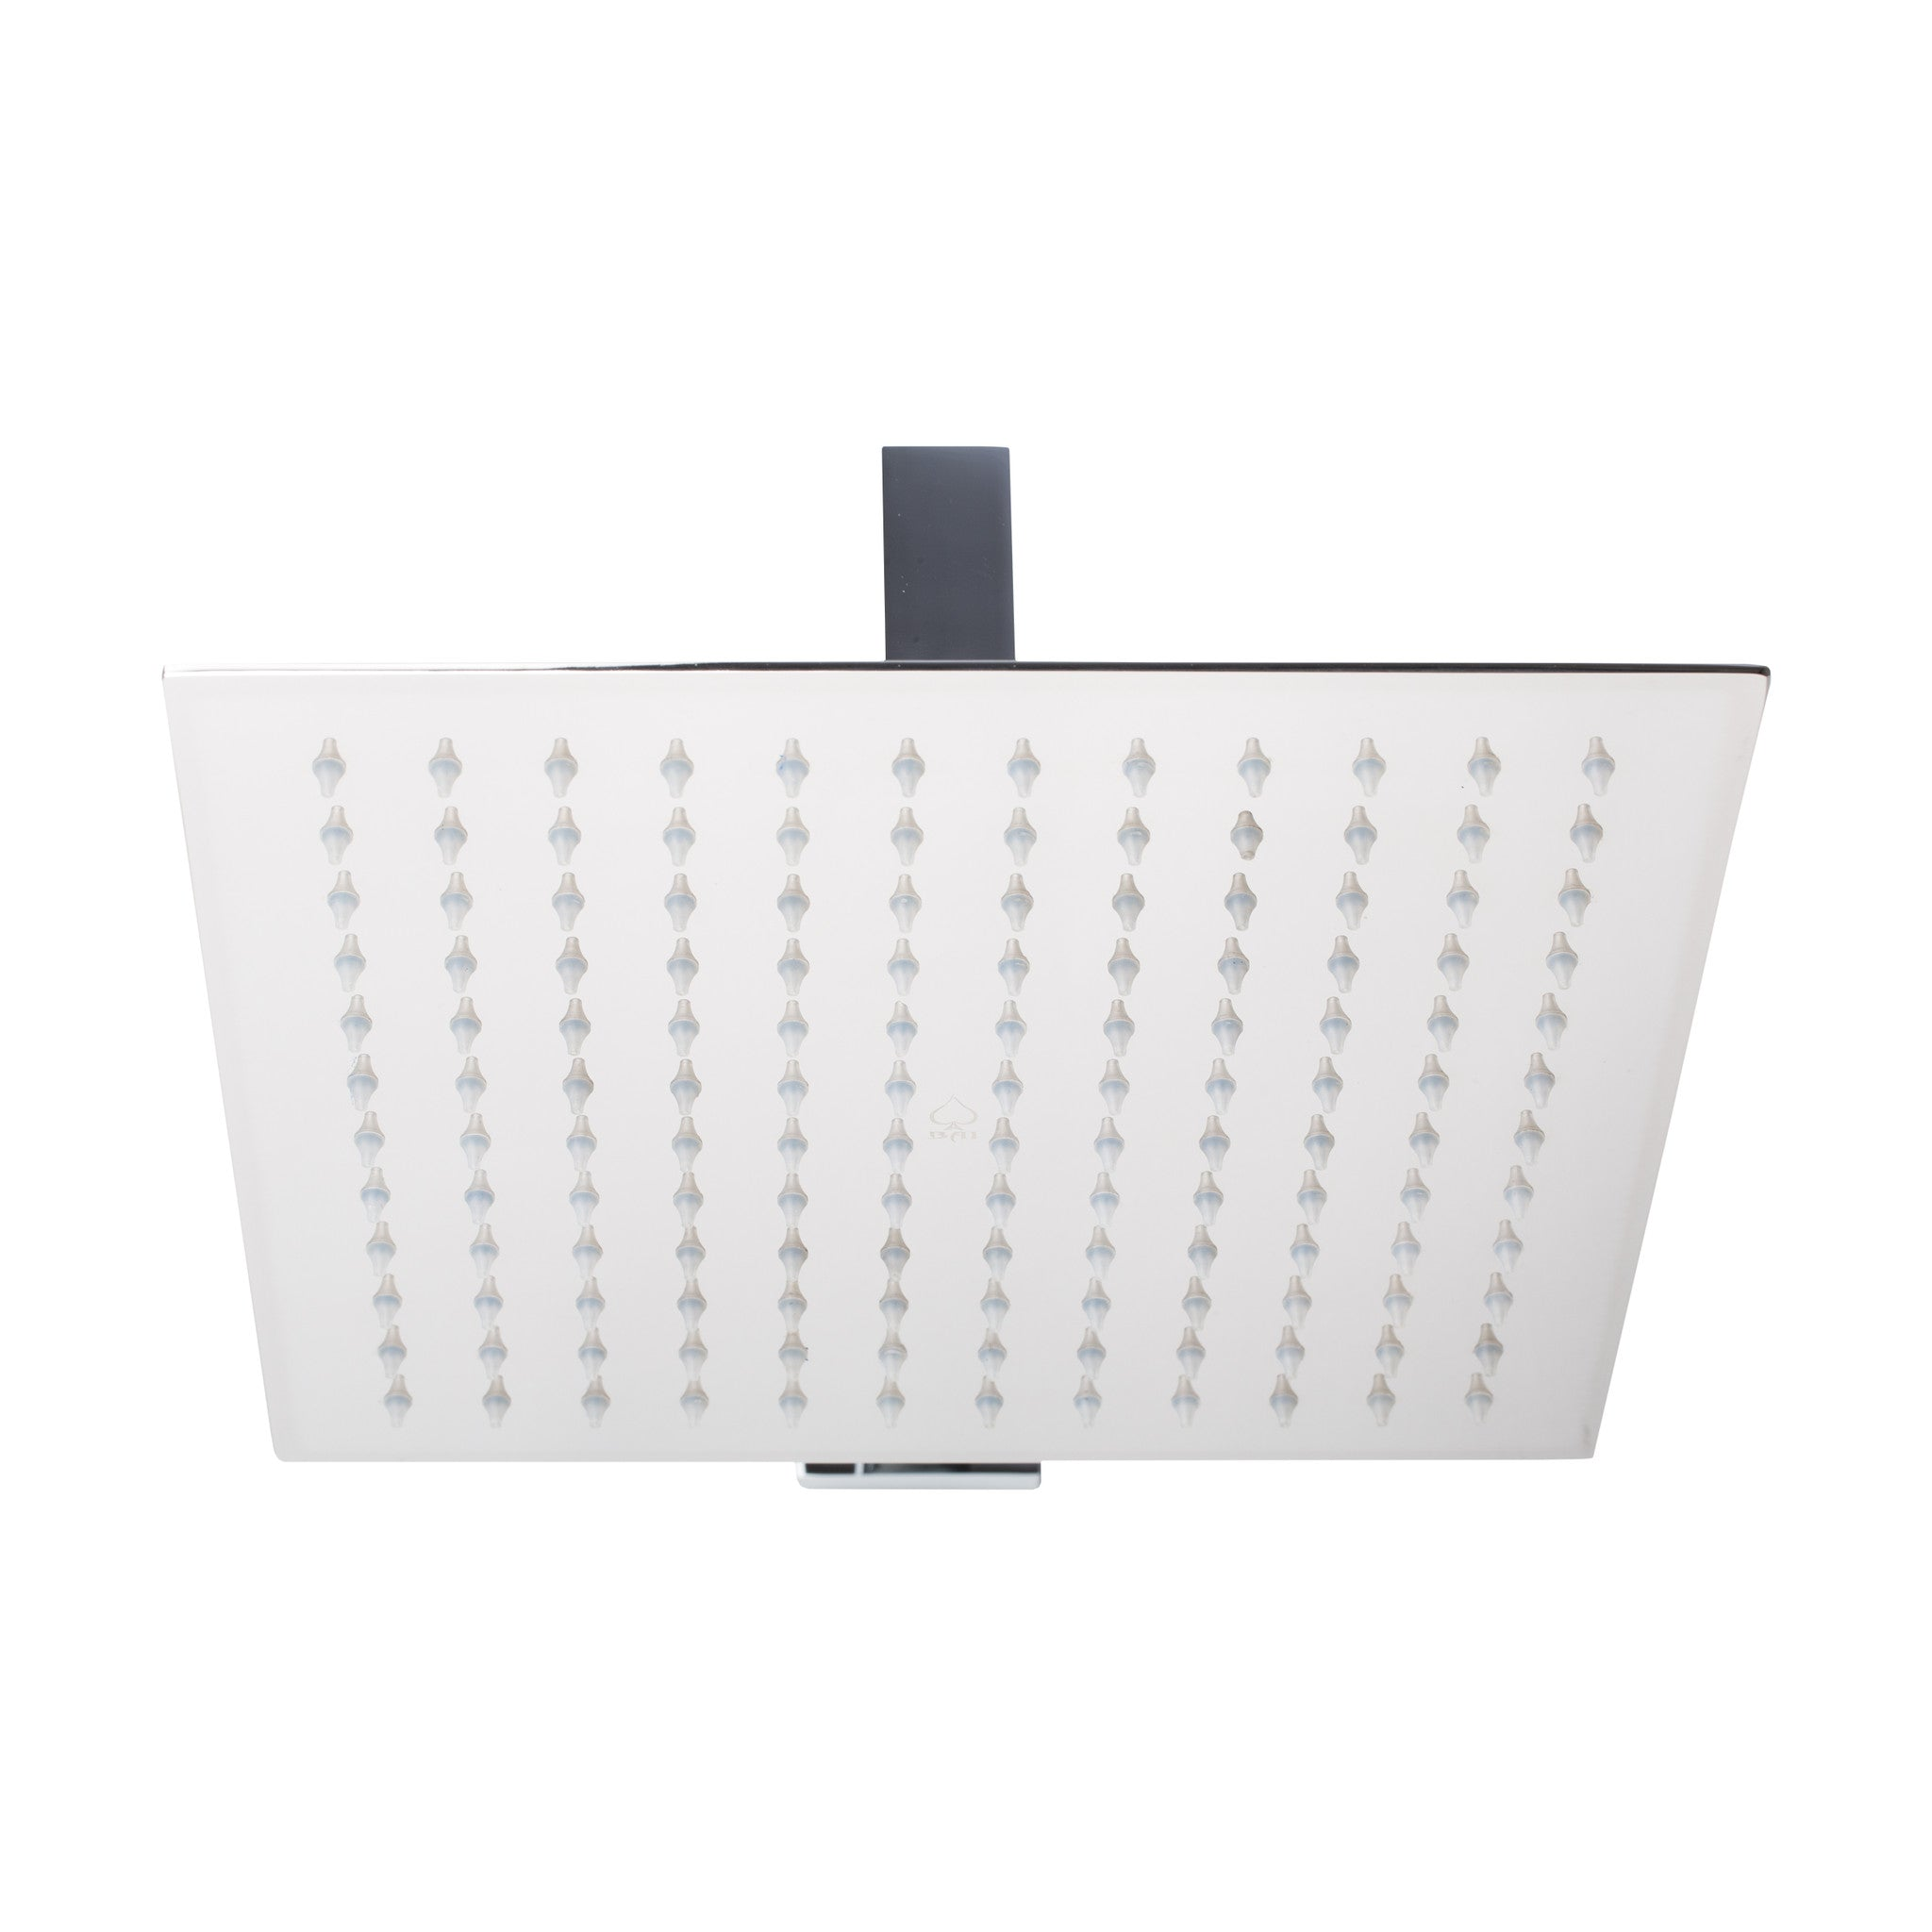 Bai 0416 Stainless Steel 10 Square Rainfall Shower Head Polished